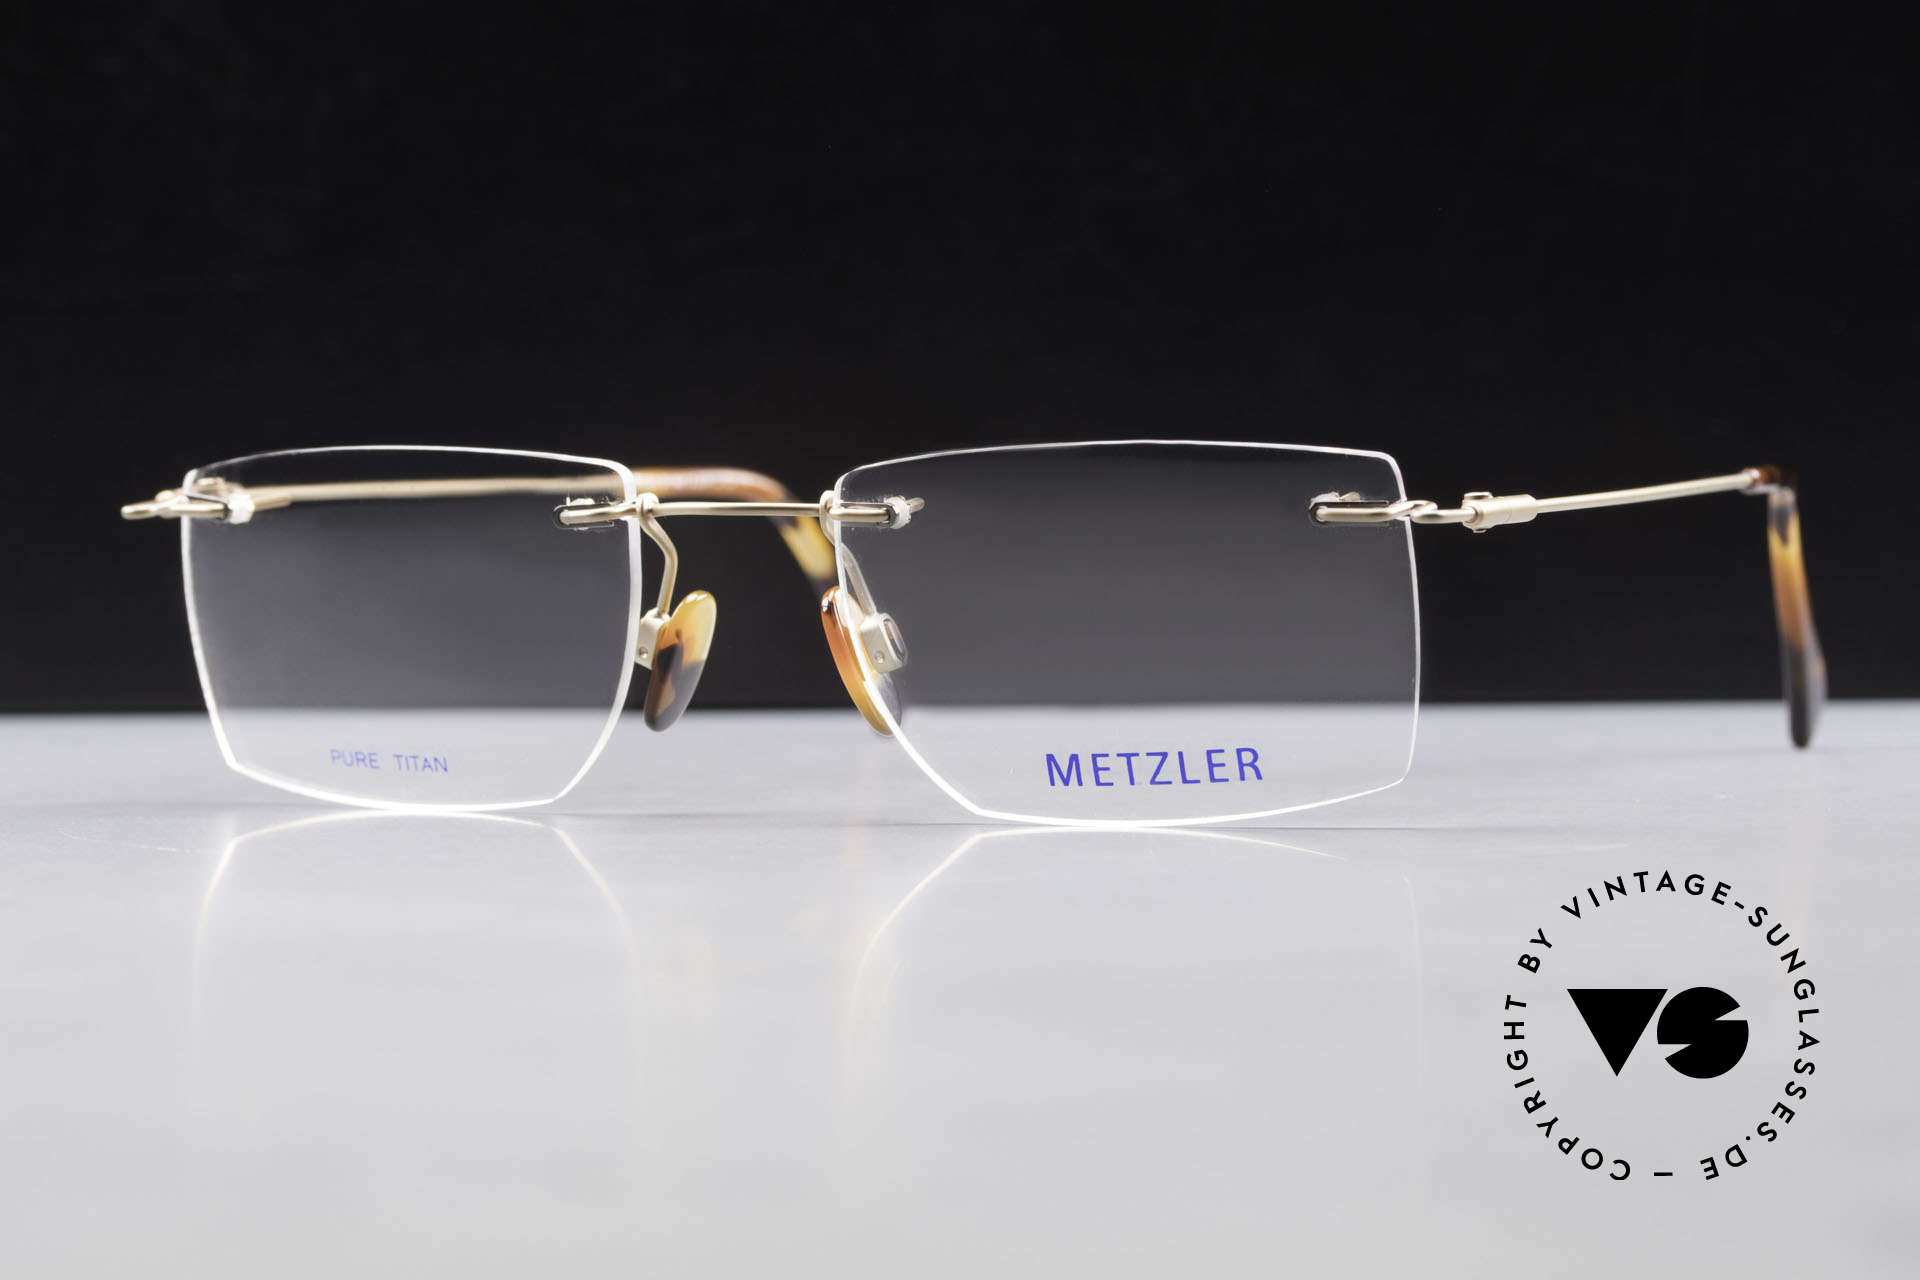 Metzler 1484 Rimless Vintage Glasses Titan, Size: medium, Made for Men